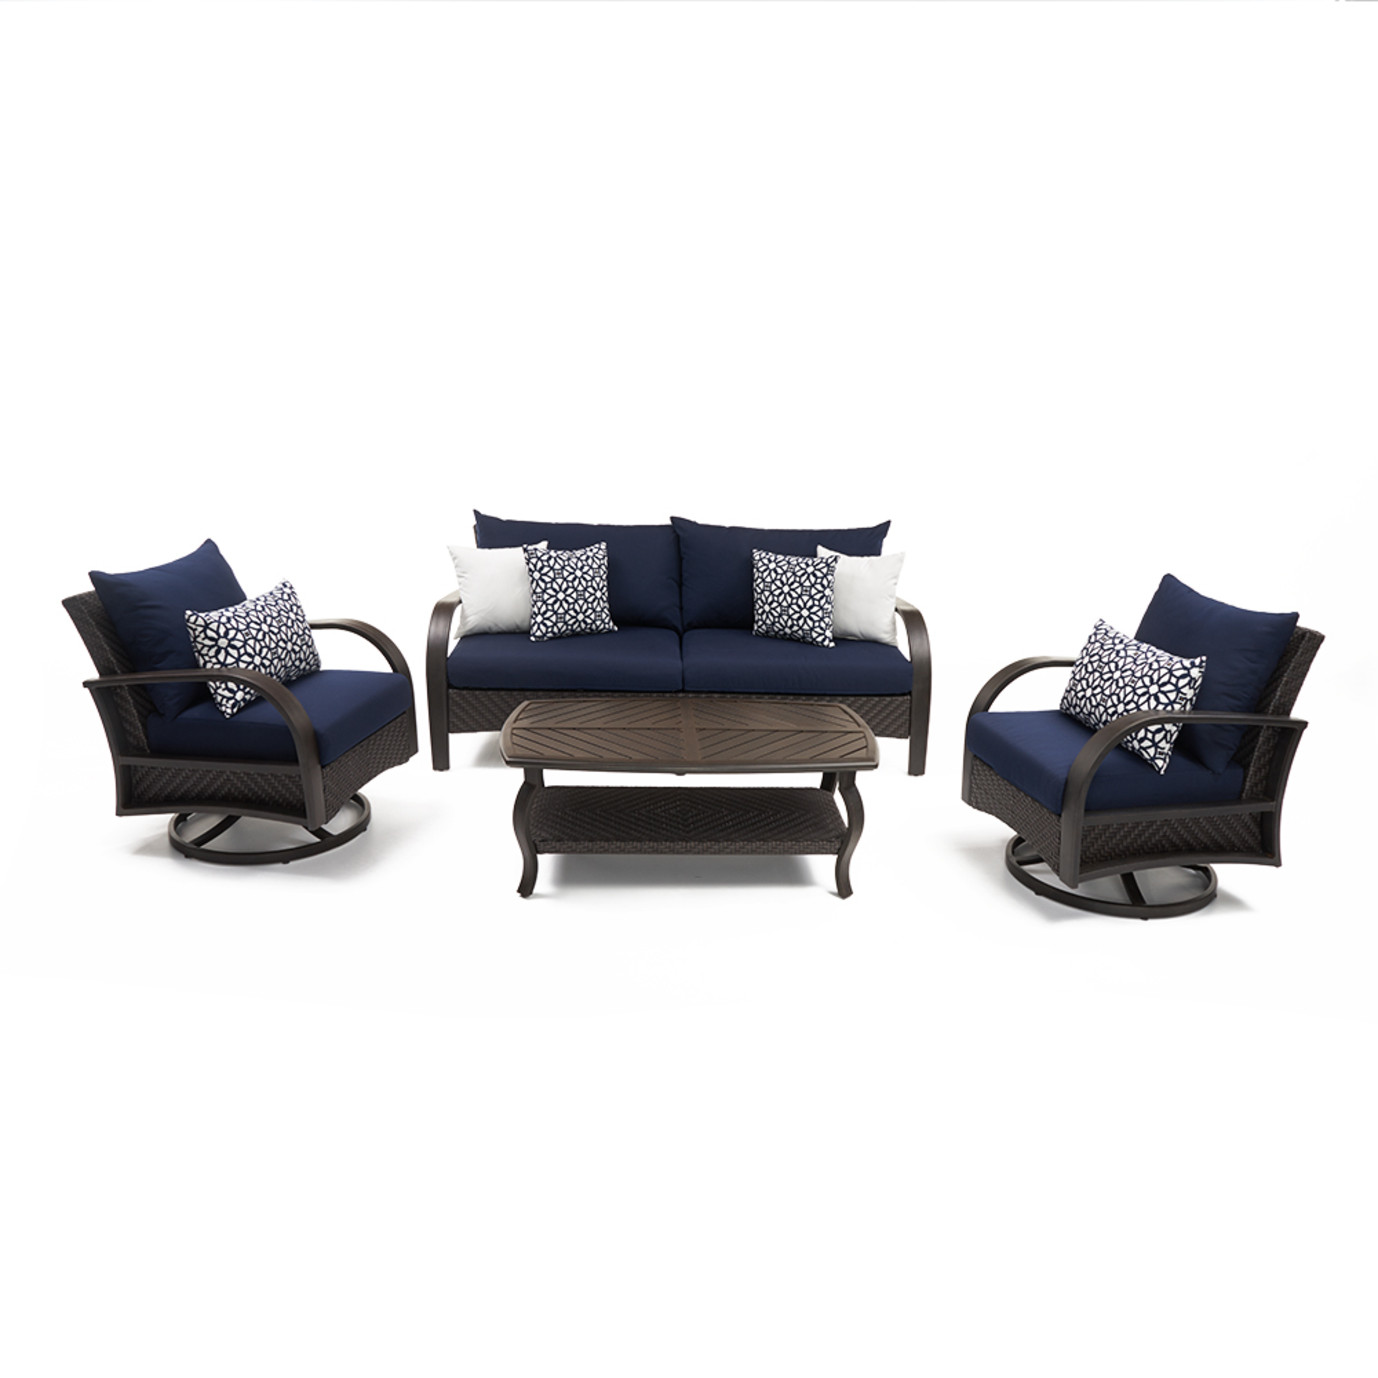 Barcelo™ 4 Piece Motion Club & Sofa Set - Navy Blue